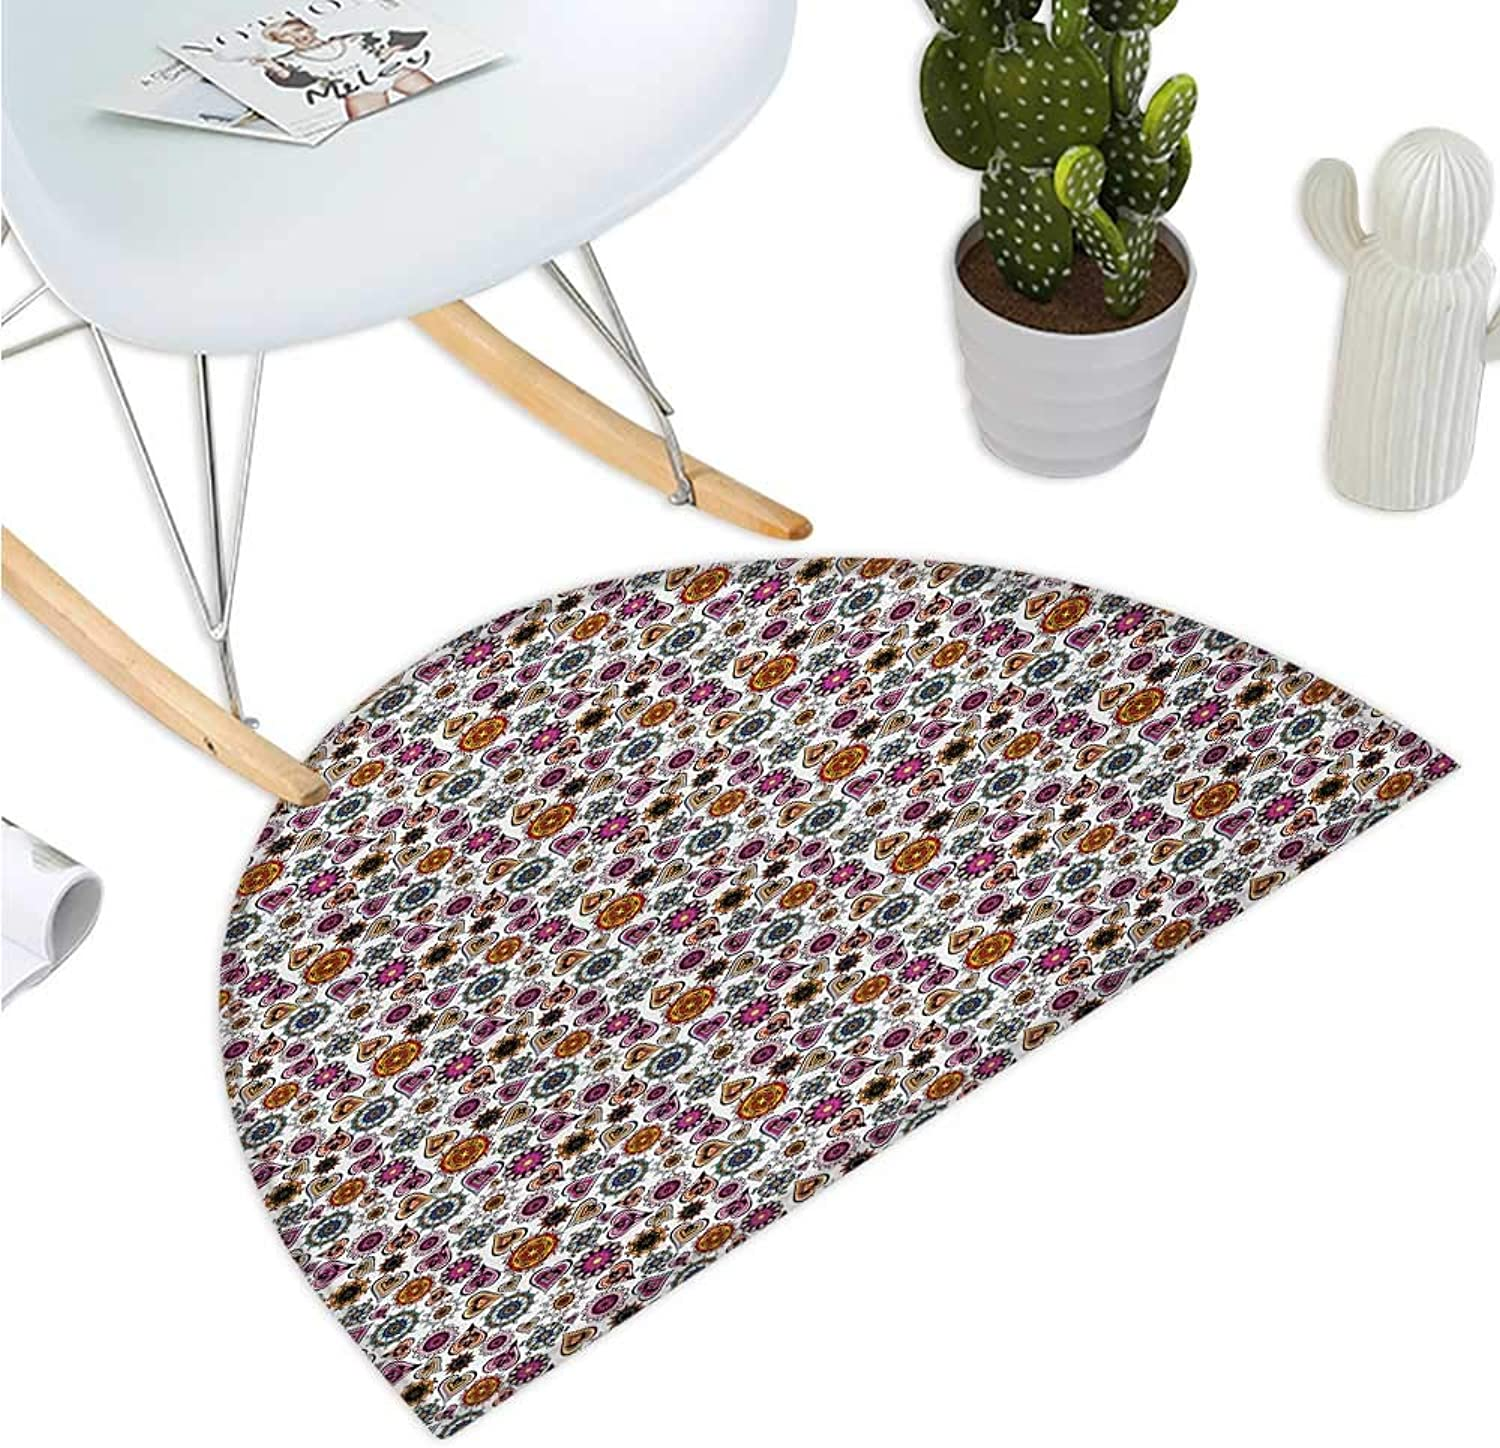 Hearts Semicircle Doormat colorful Romantic Shapes with Ethnic Designs Mandala Circles Oriental Inspirations Entry Door Mat H 35.4  xD 53.1  Multicolor